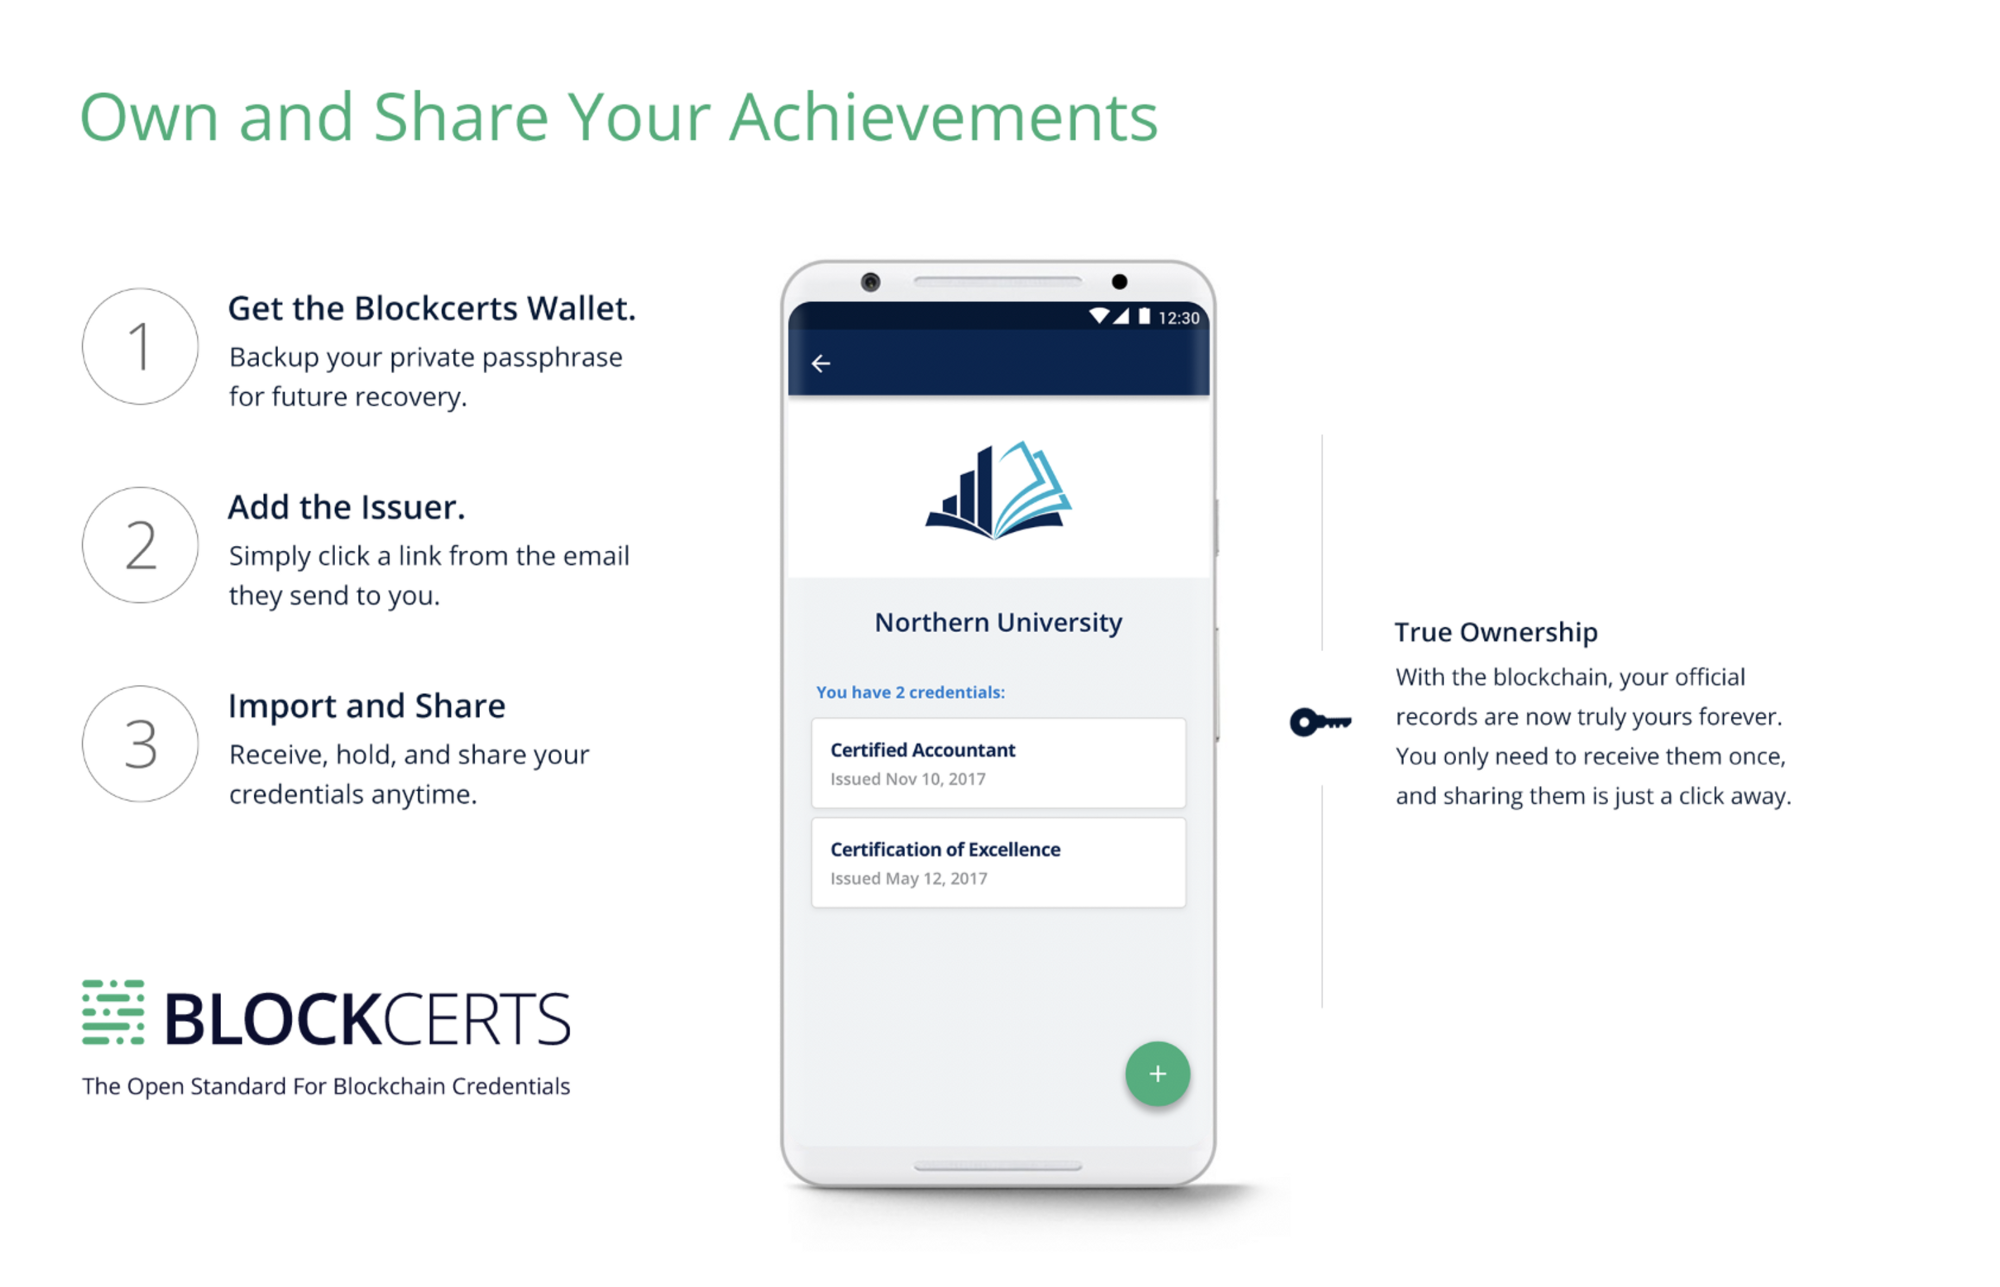 Illustration showing usage instructions of Blockcerts wallet app with a smartphone at the centre